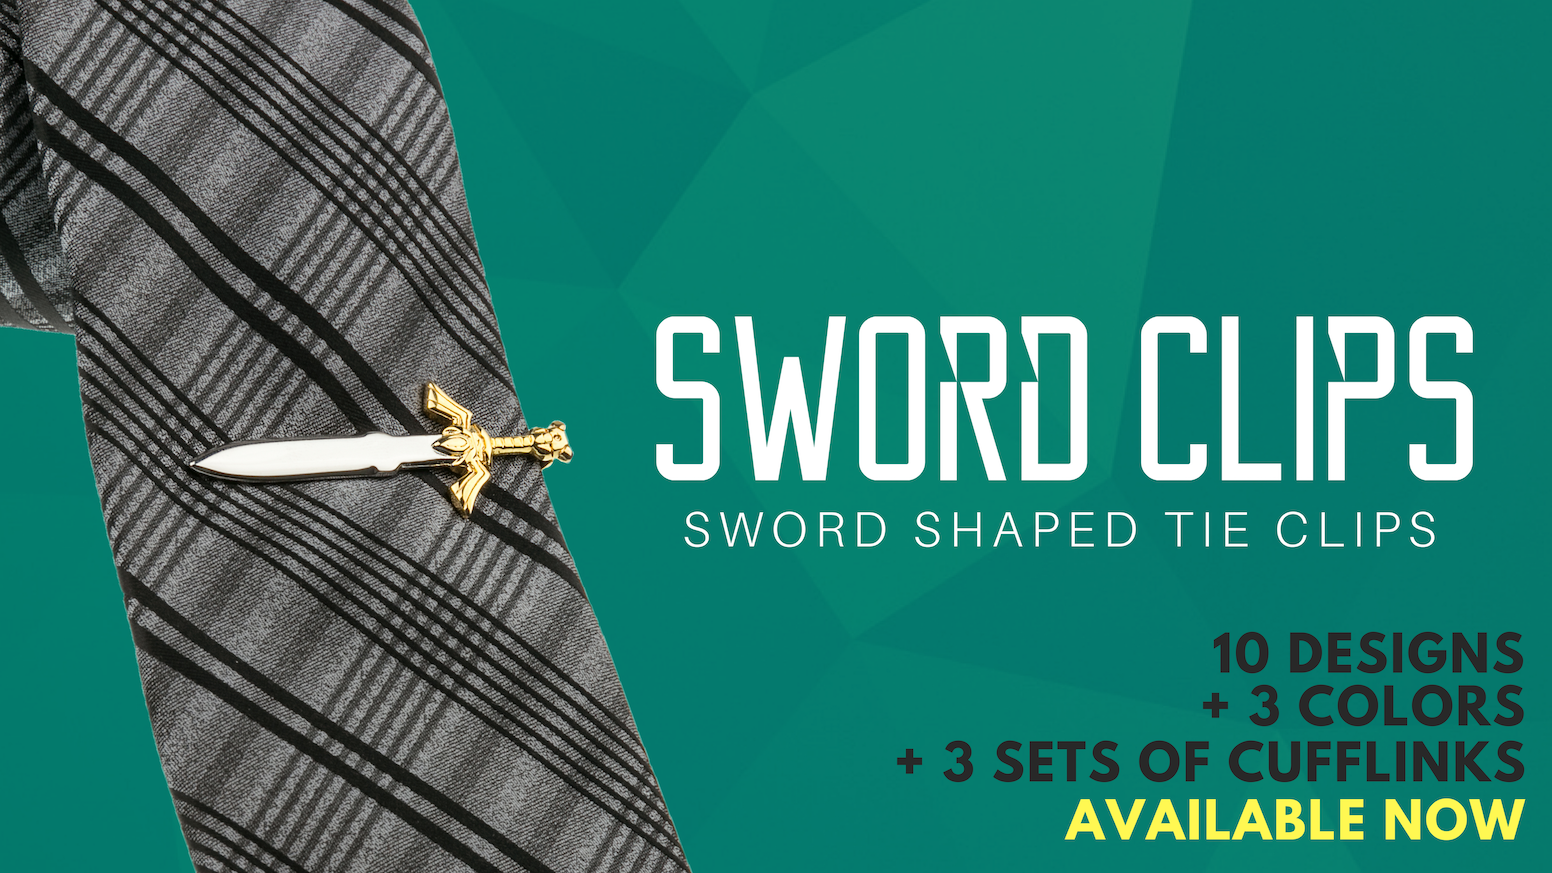 Nerdy tie clips inspired by some of pop-culture's most iconic swords. Ten designs available now!